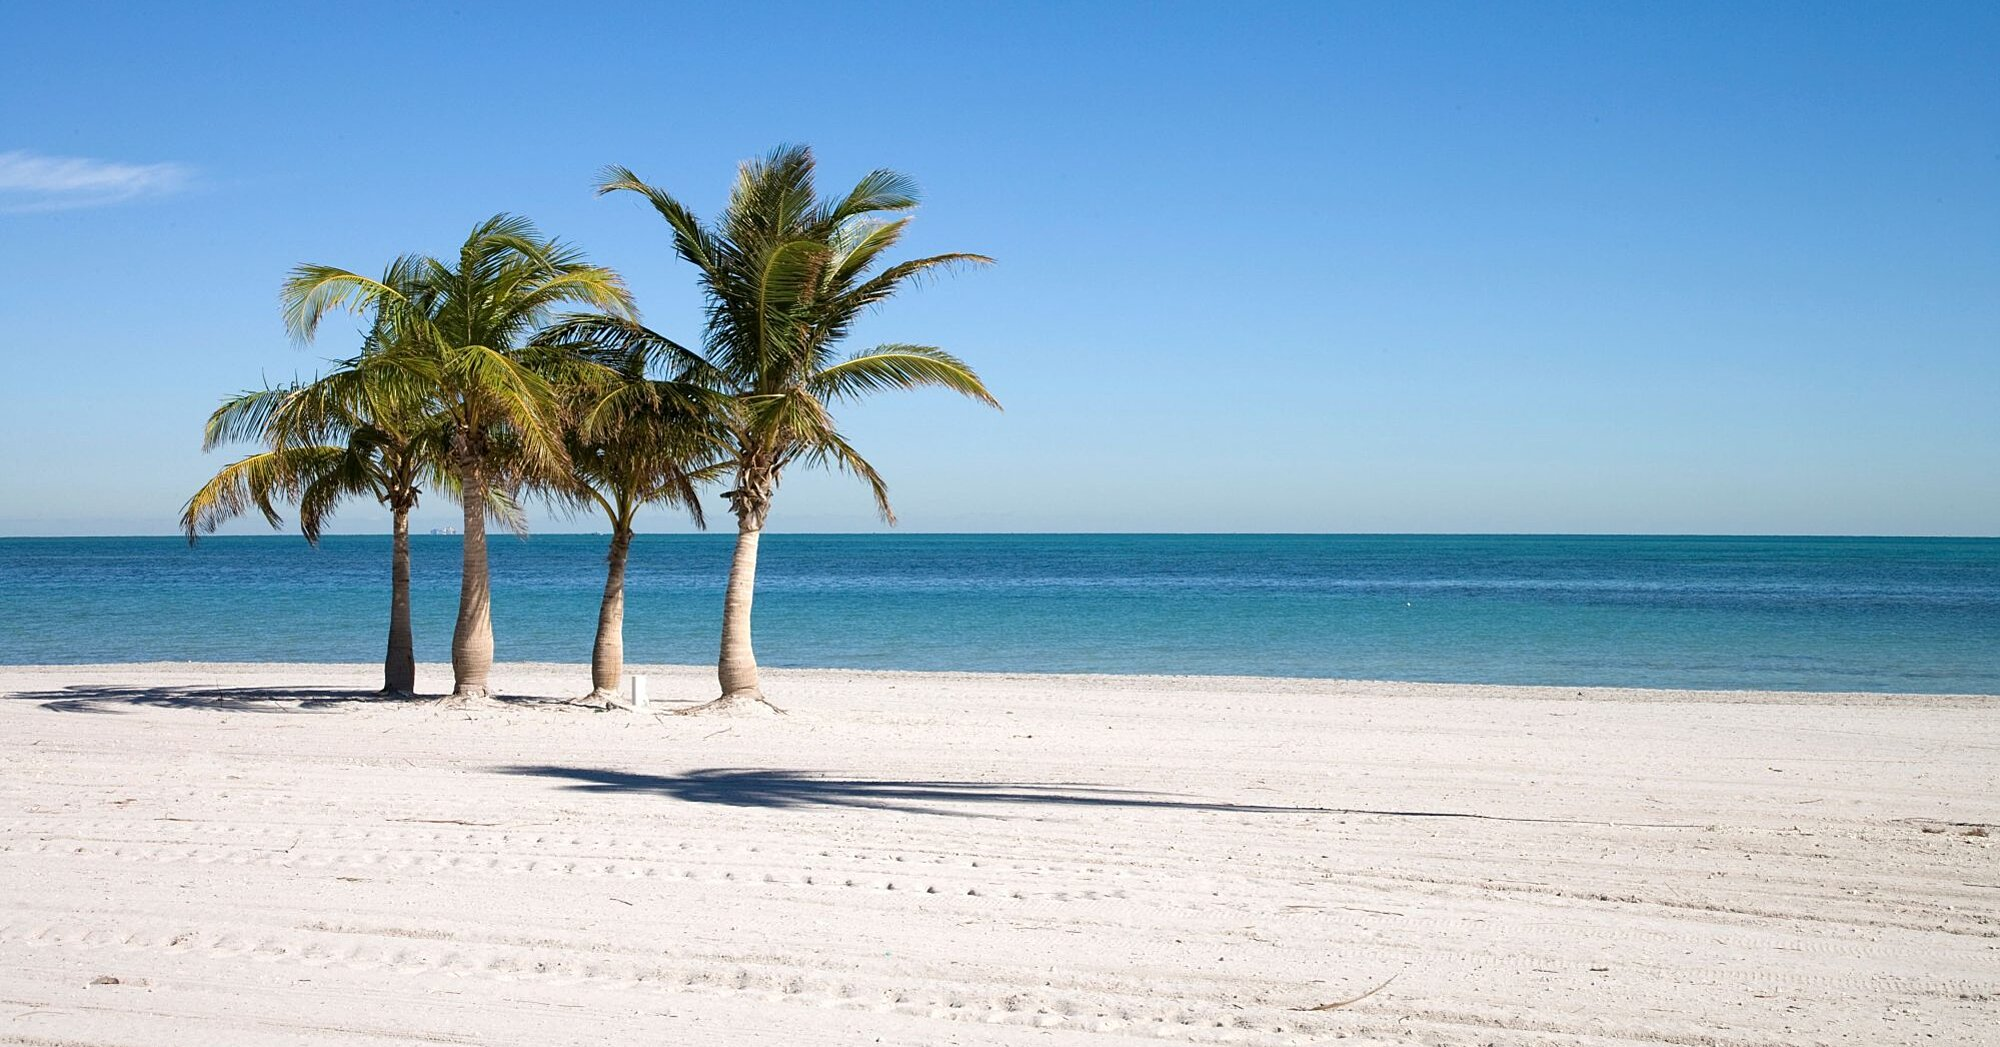 10 Florida Beaches That Look Like the Caribbean